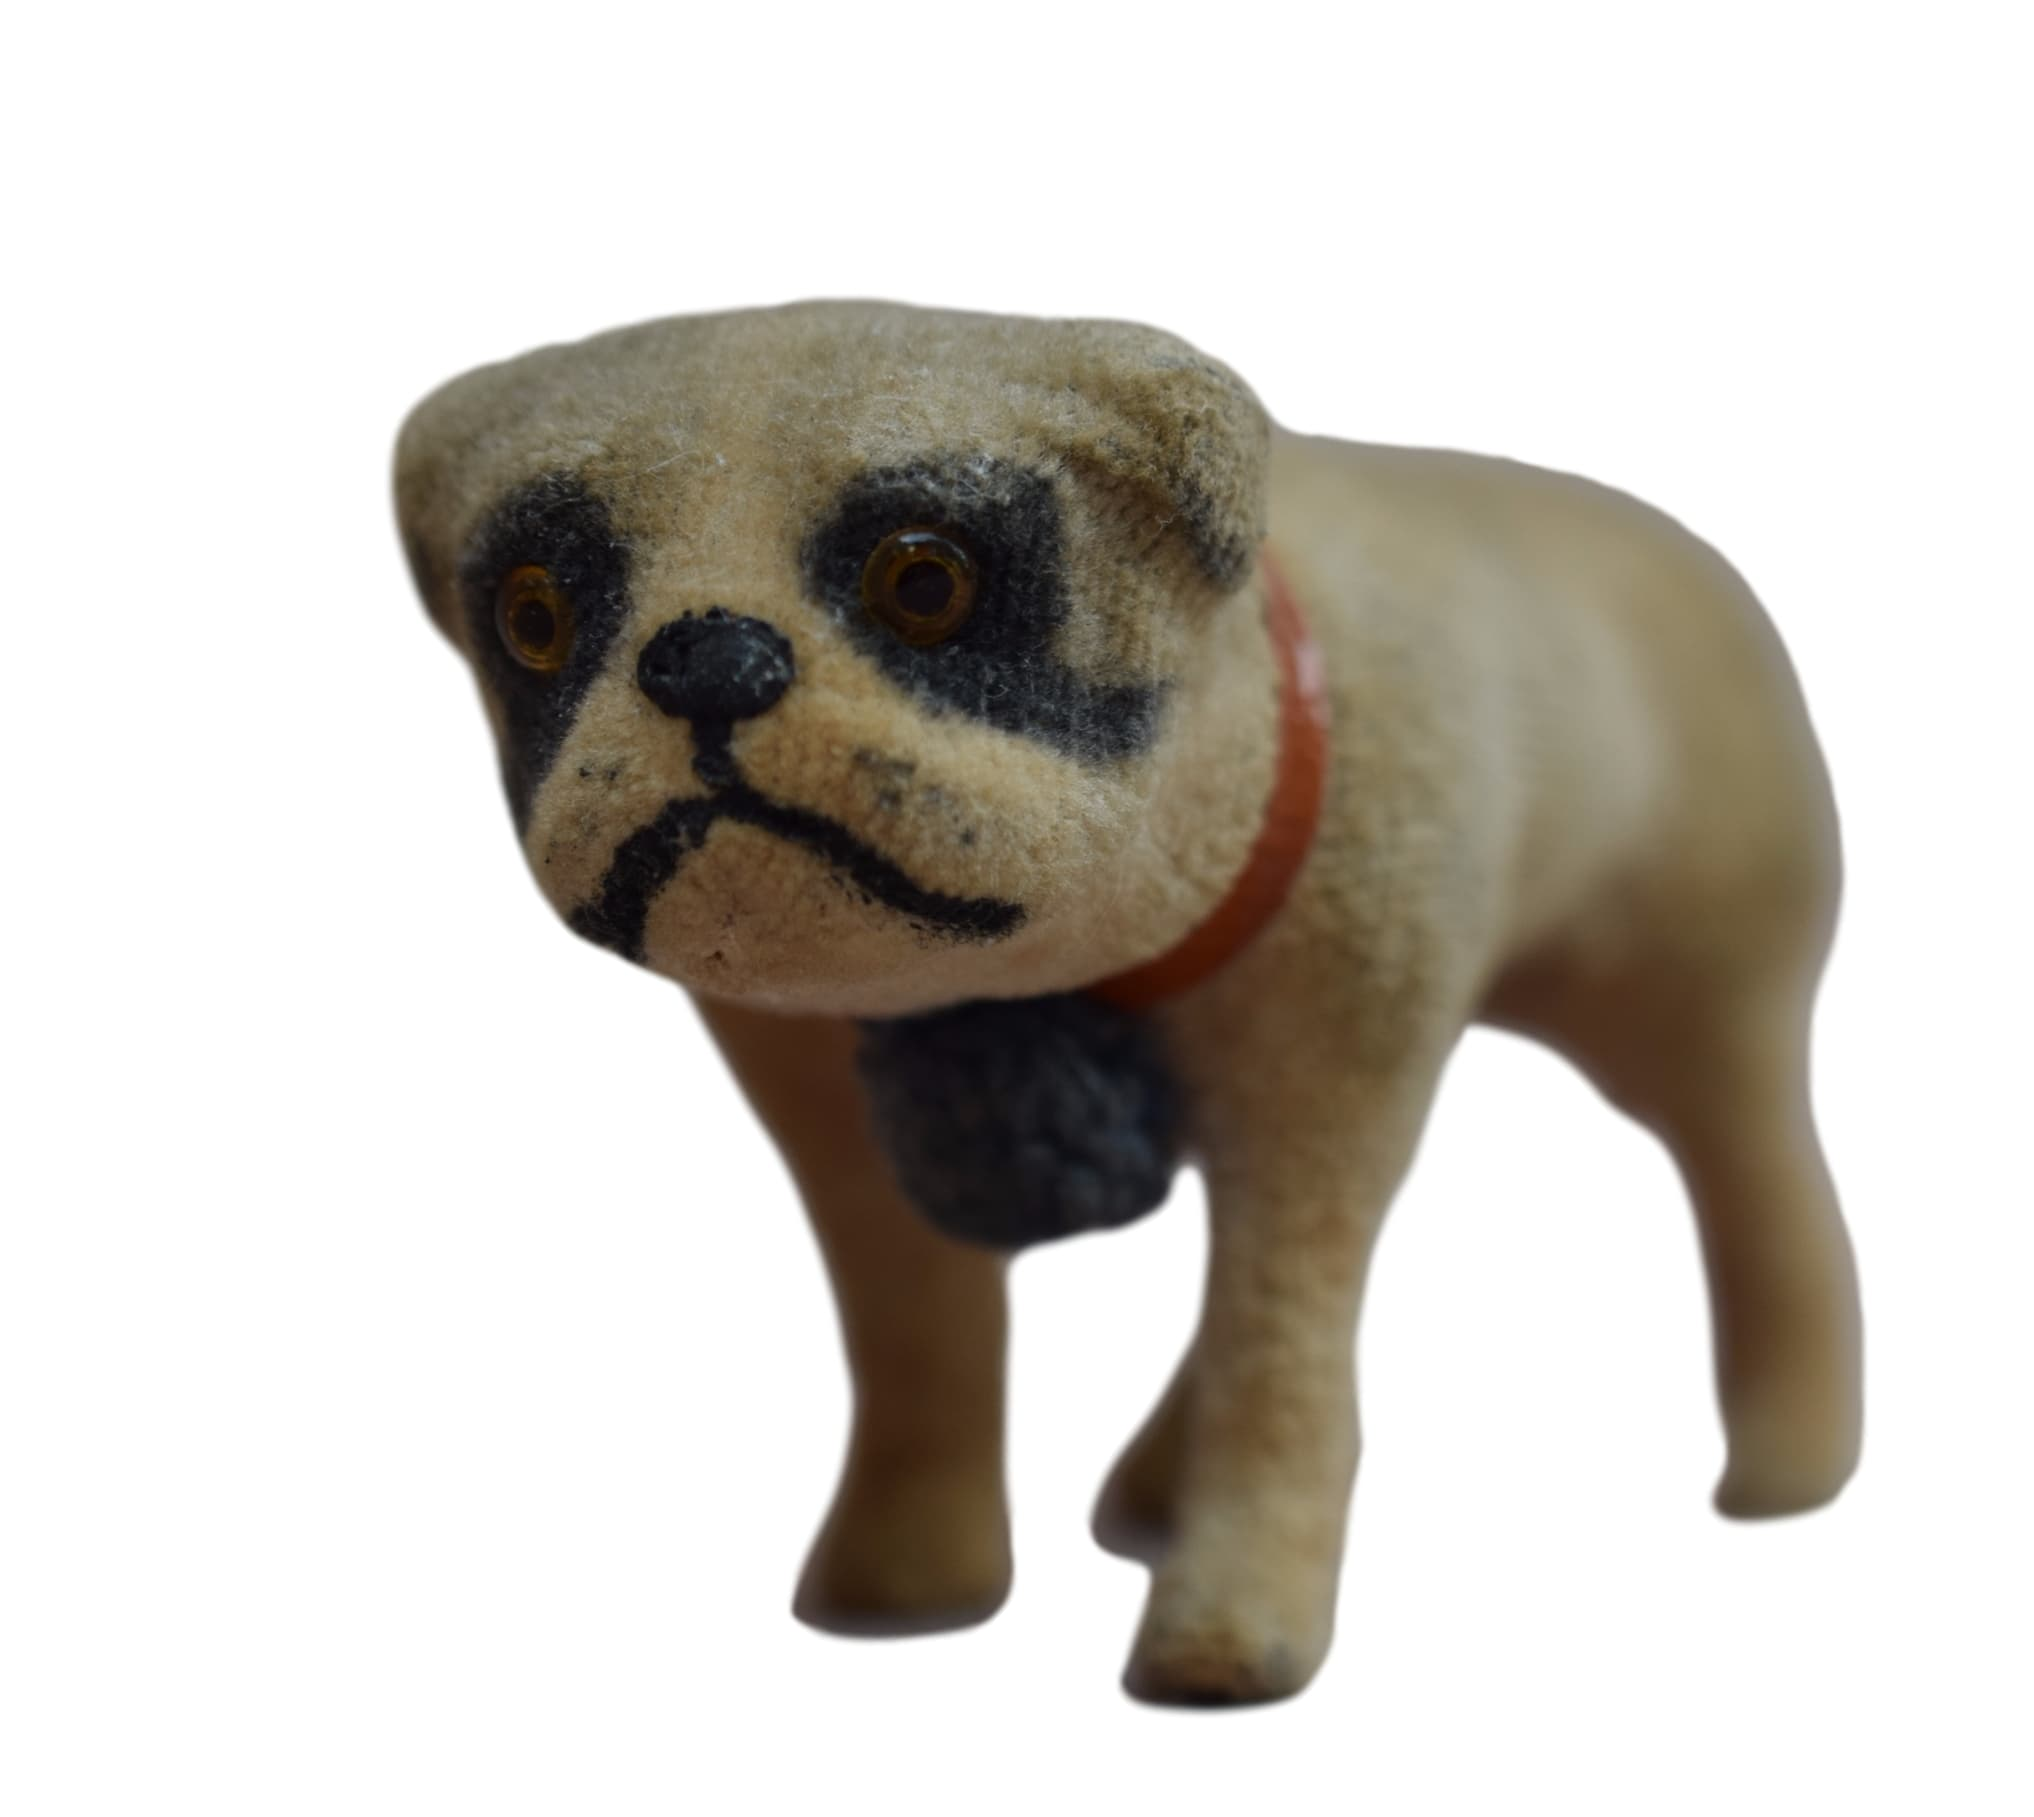 Antique Pug Carlin Putz Dog - French Fashion Doll Germany - Old Toy Children Colectible Handmade